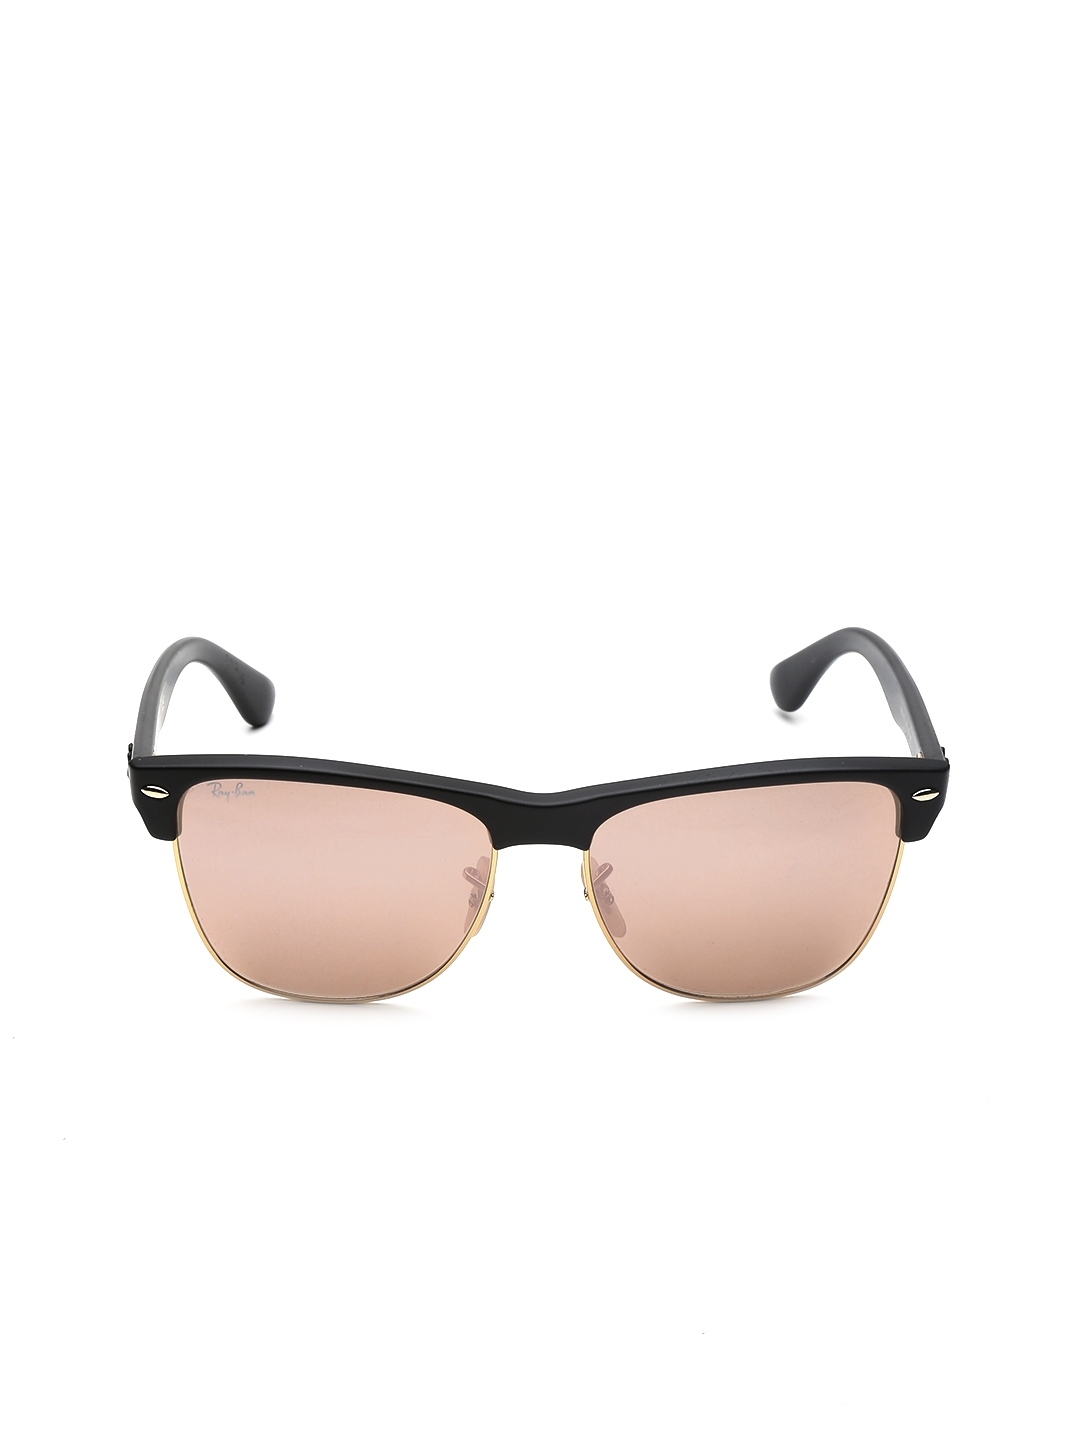 92c11982d3 Buy Ray Ban Men Mirrored Clubmaster Sunglasses 0RB4175 - Sunglasses ...